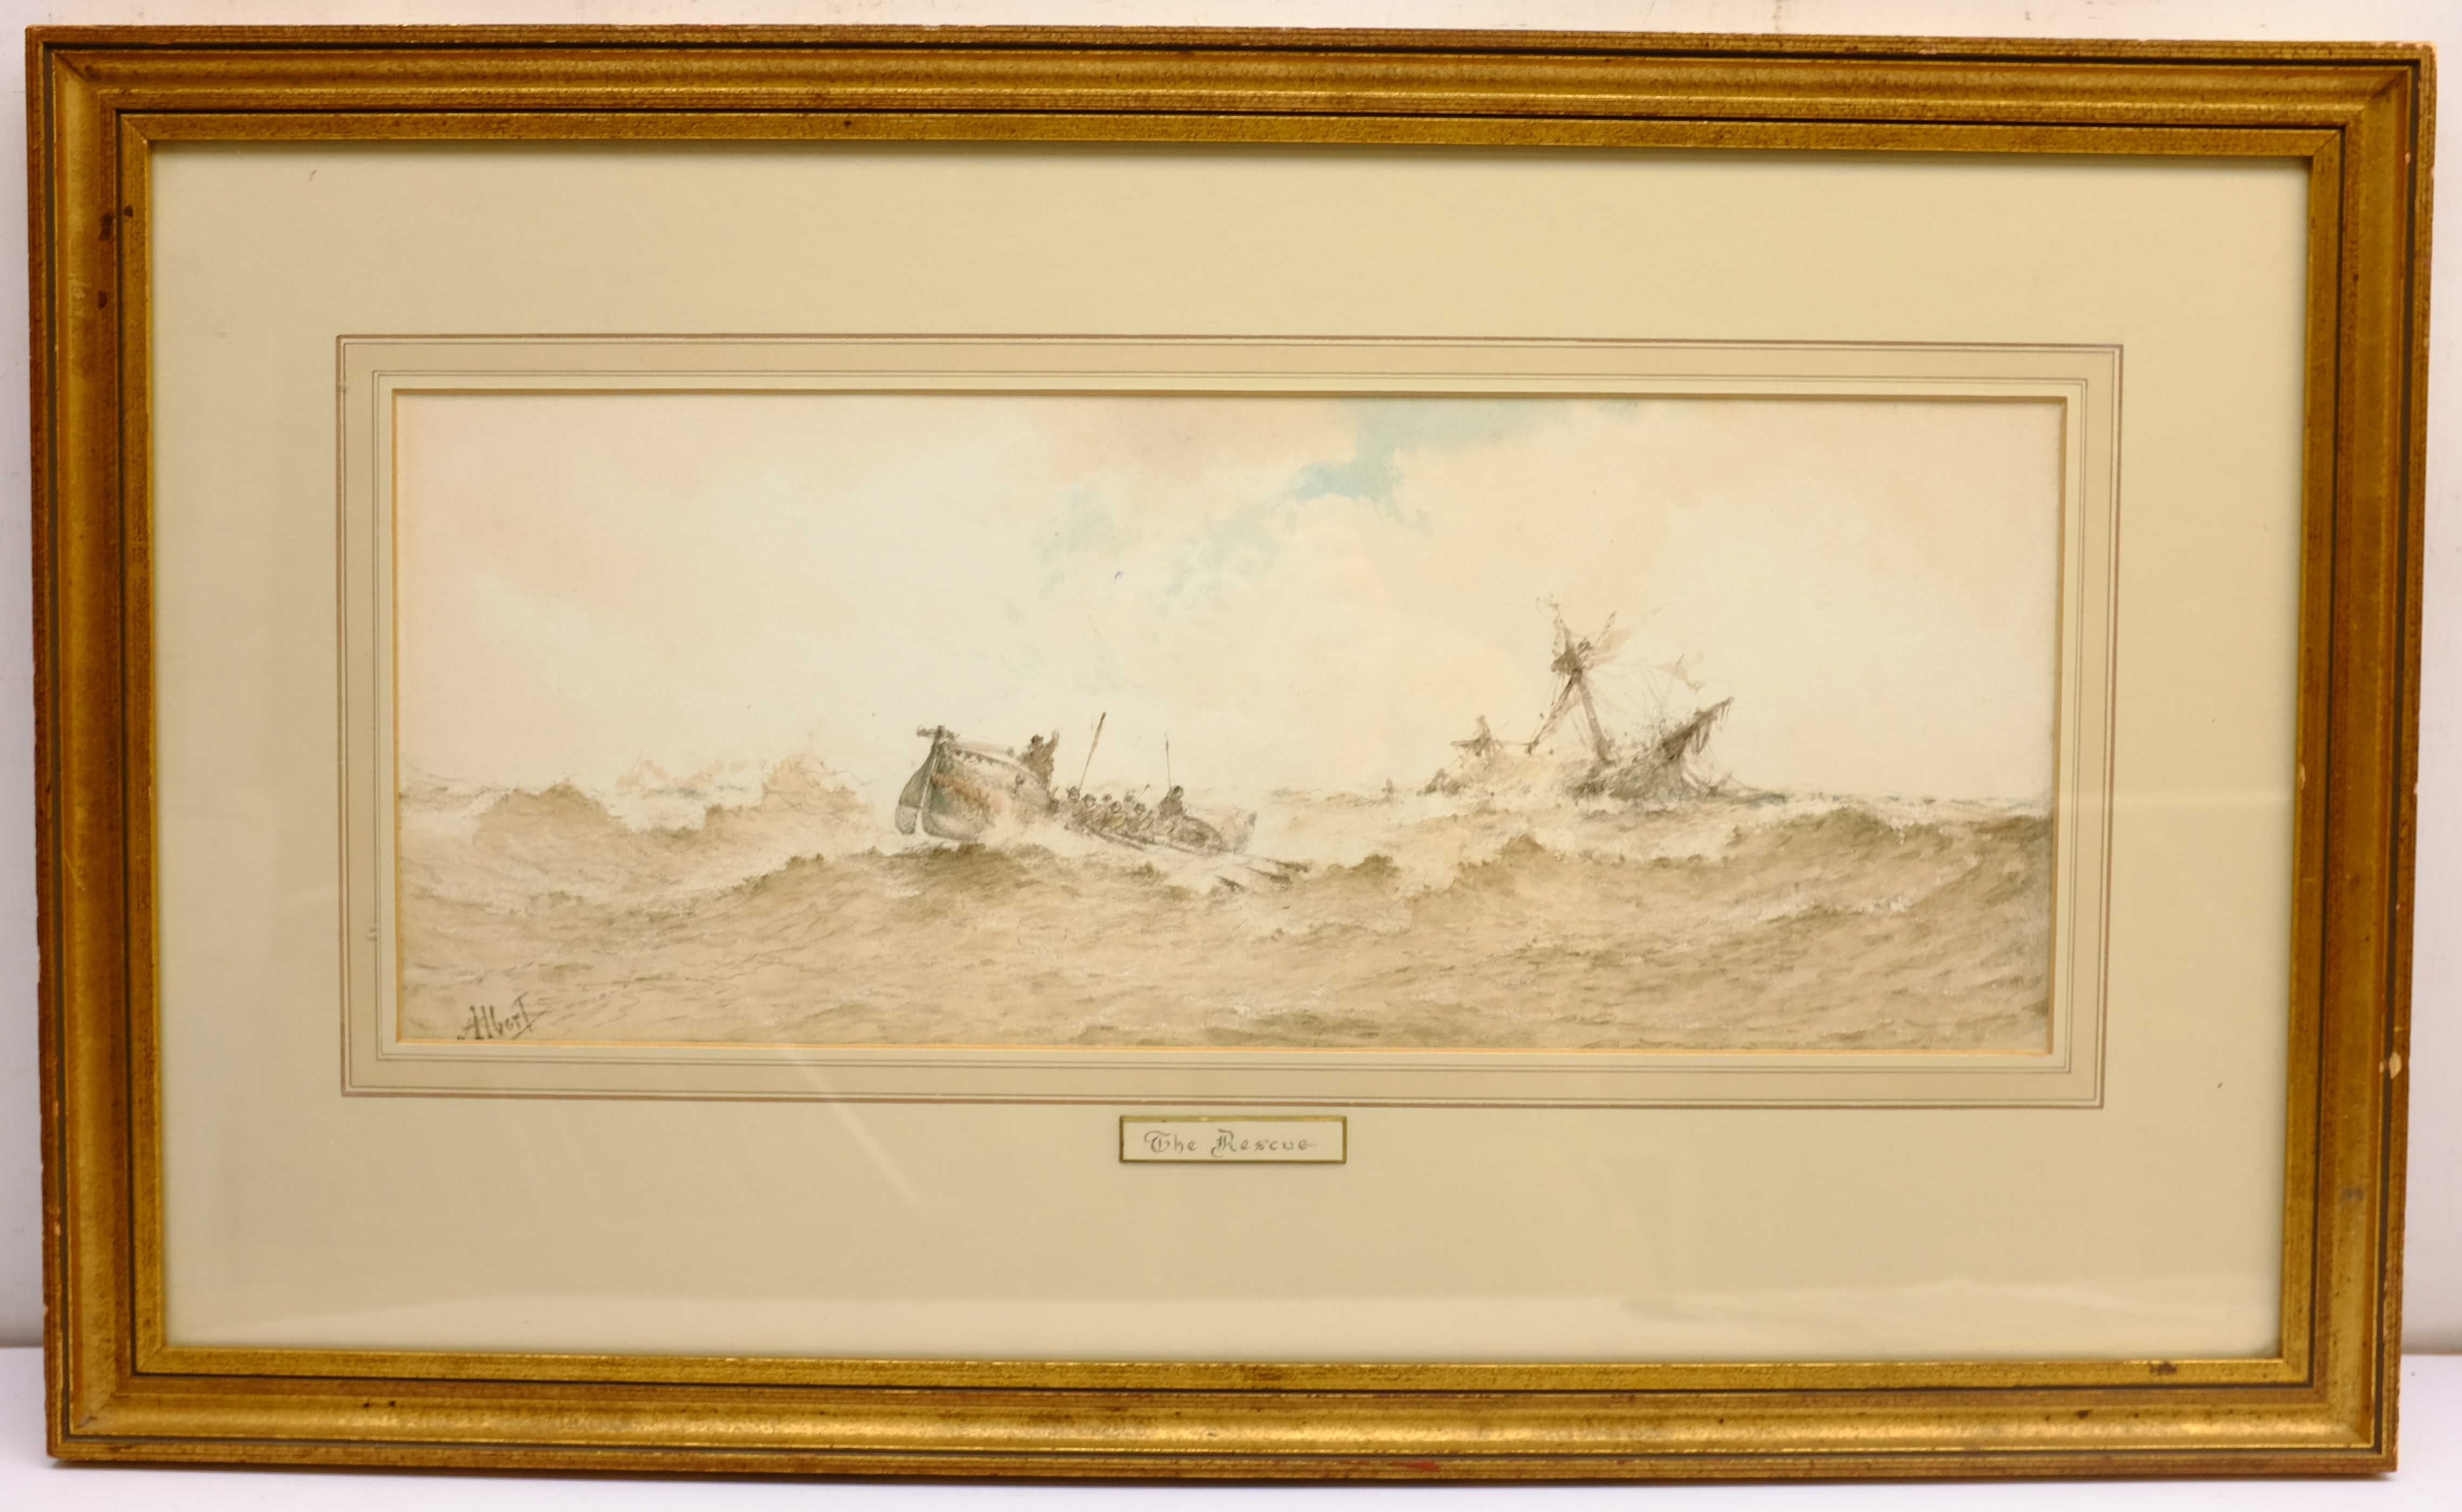 Albert Ernest Markes (British 1865-1901): 'The Rescue', watercolour signed, titled on the mount 20cm - Image 4 of 4